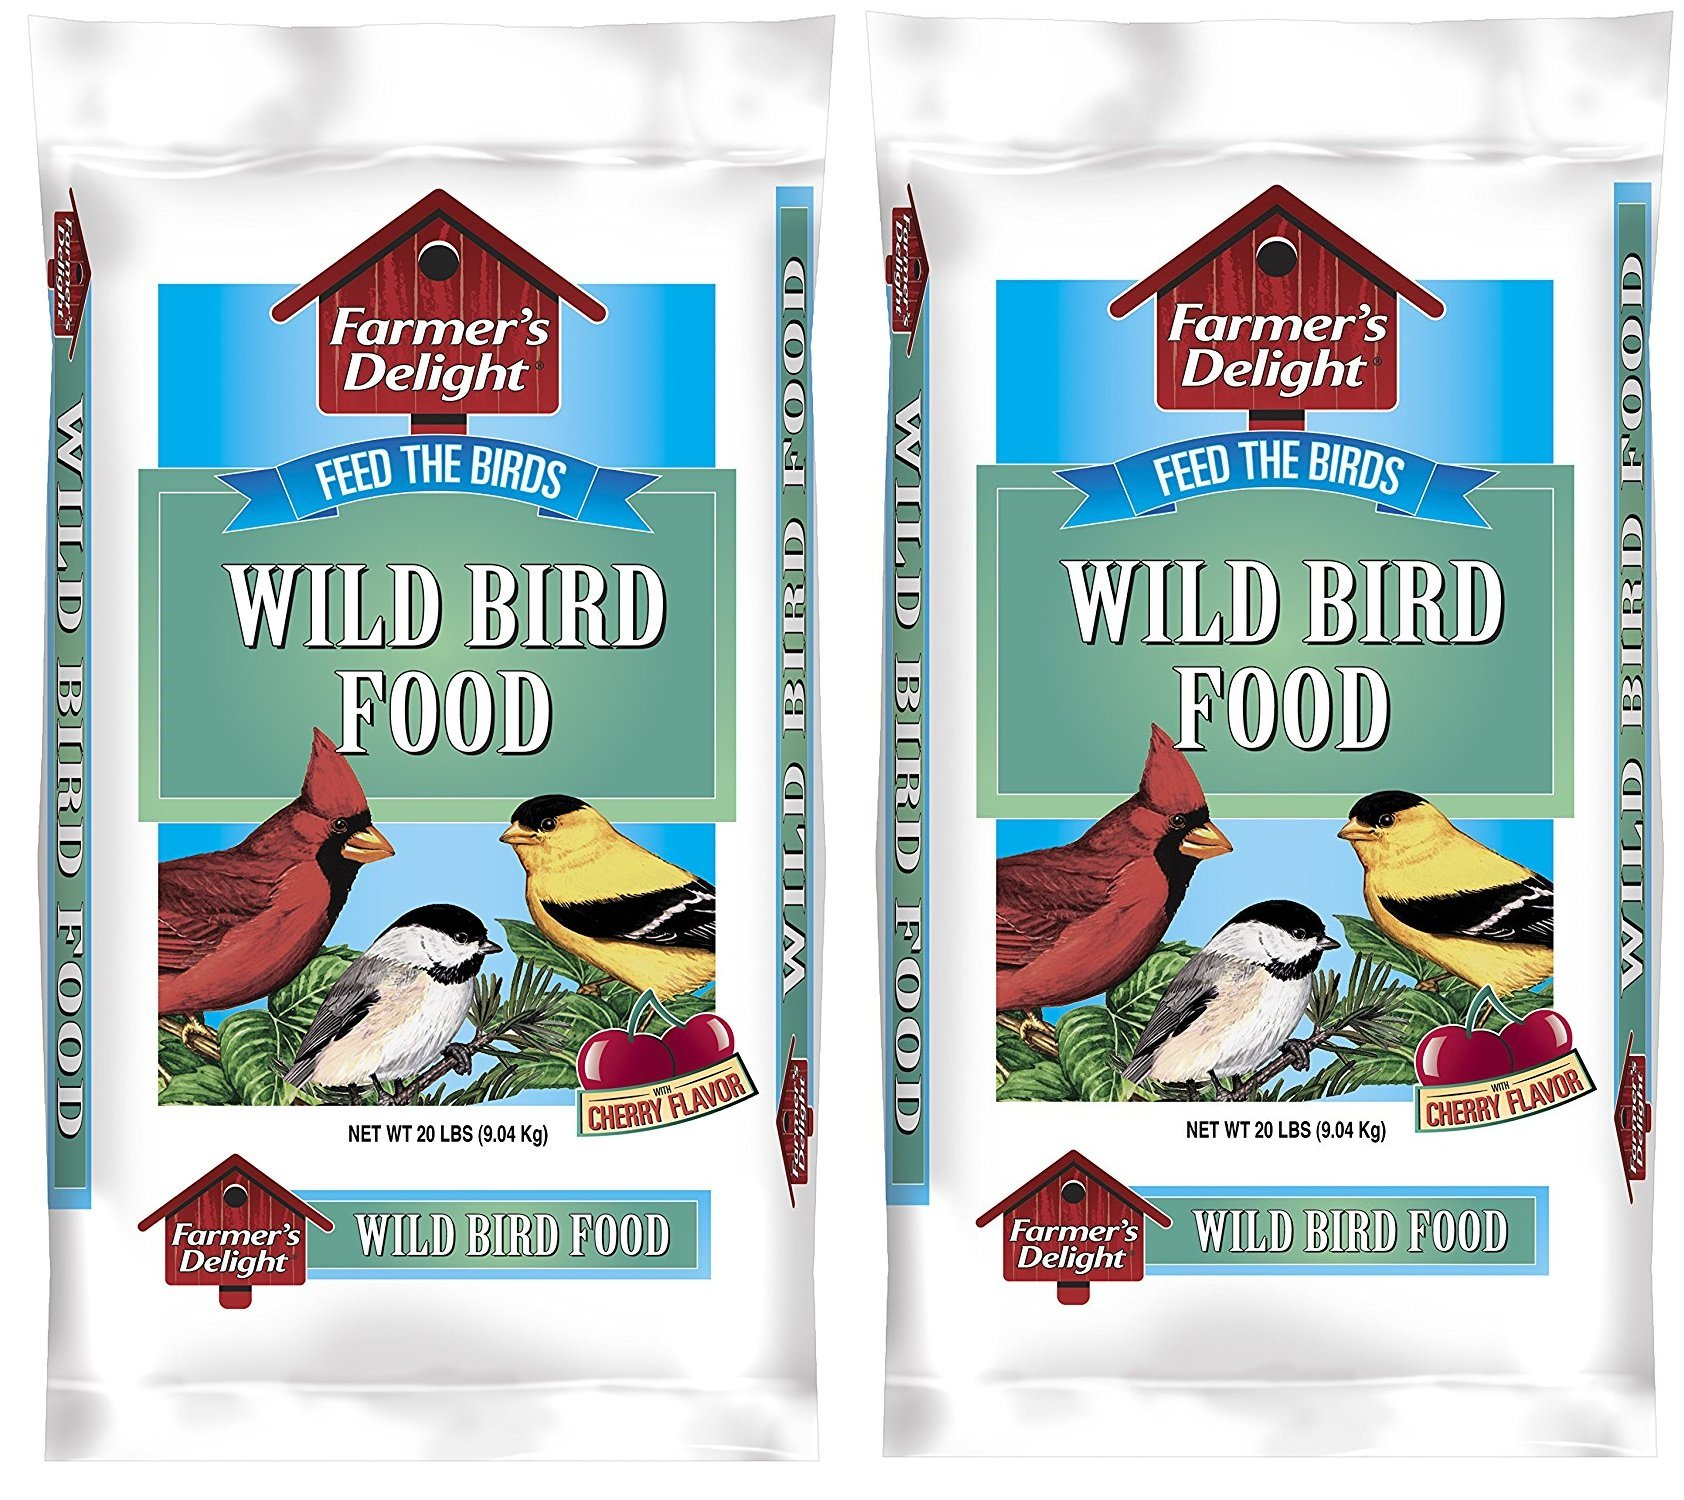 Wagners 53002 Farmers Delight Wild Bird Food, With Cherry Flavor, 20-Pound Bag, eIeaNs 2Pack (20-Pound Bag)